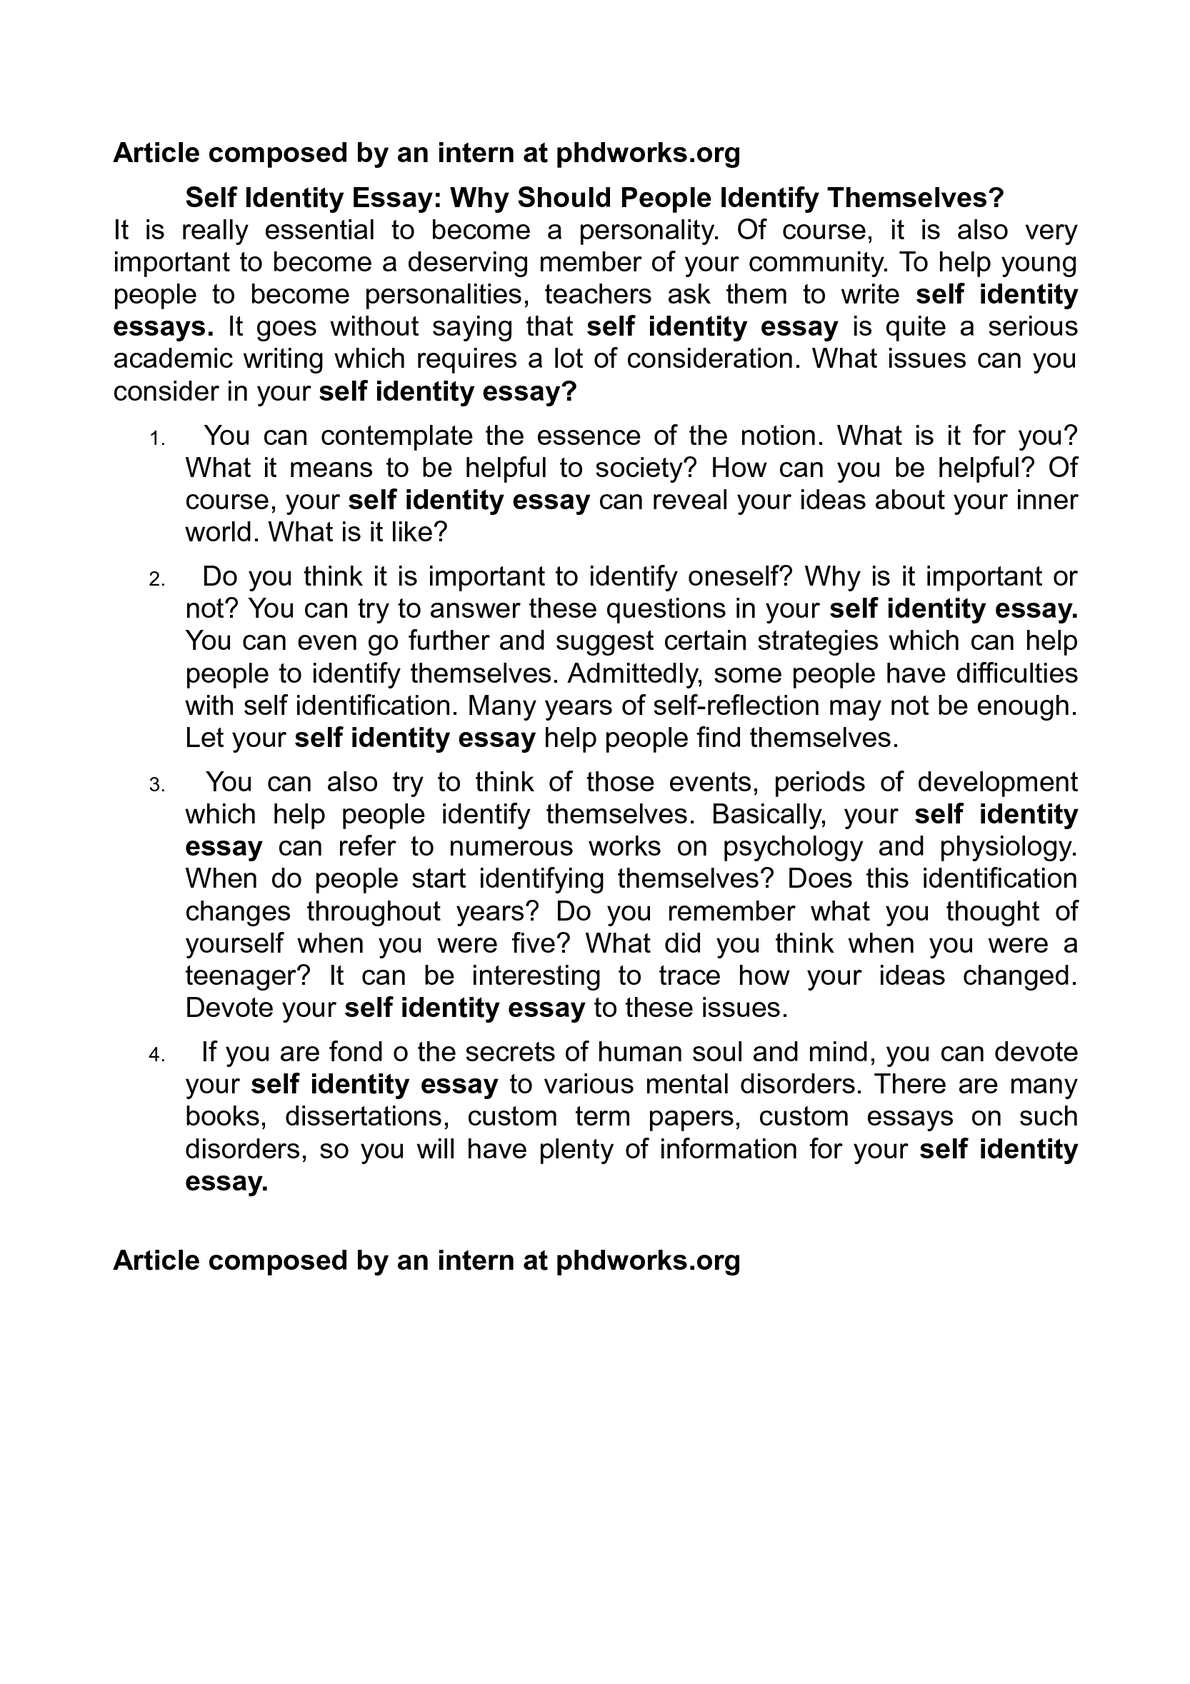 p1 jpg calaméo self identity essay why should people identify themselves